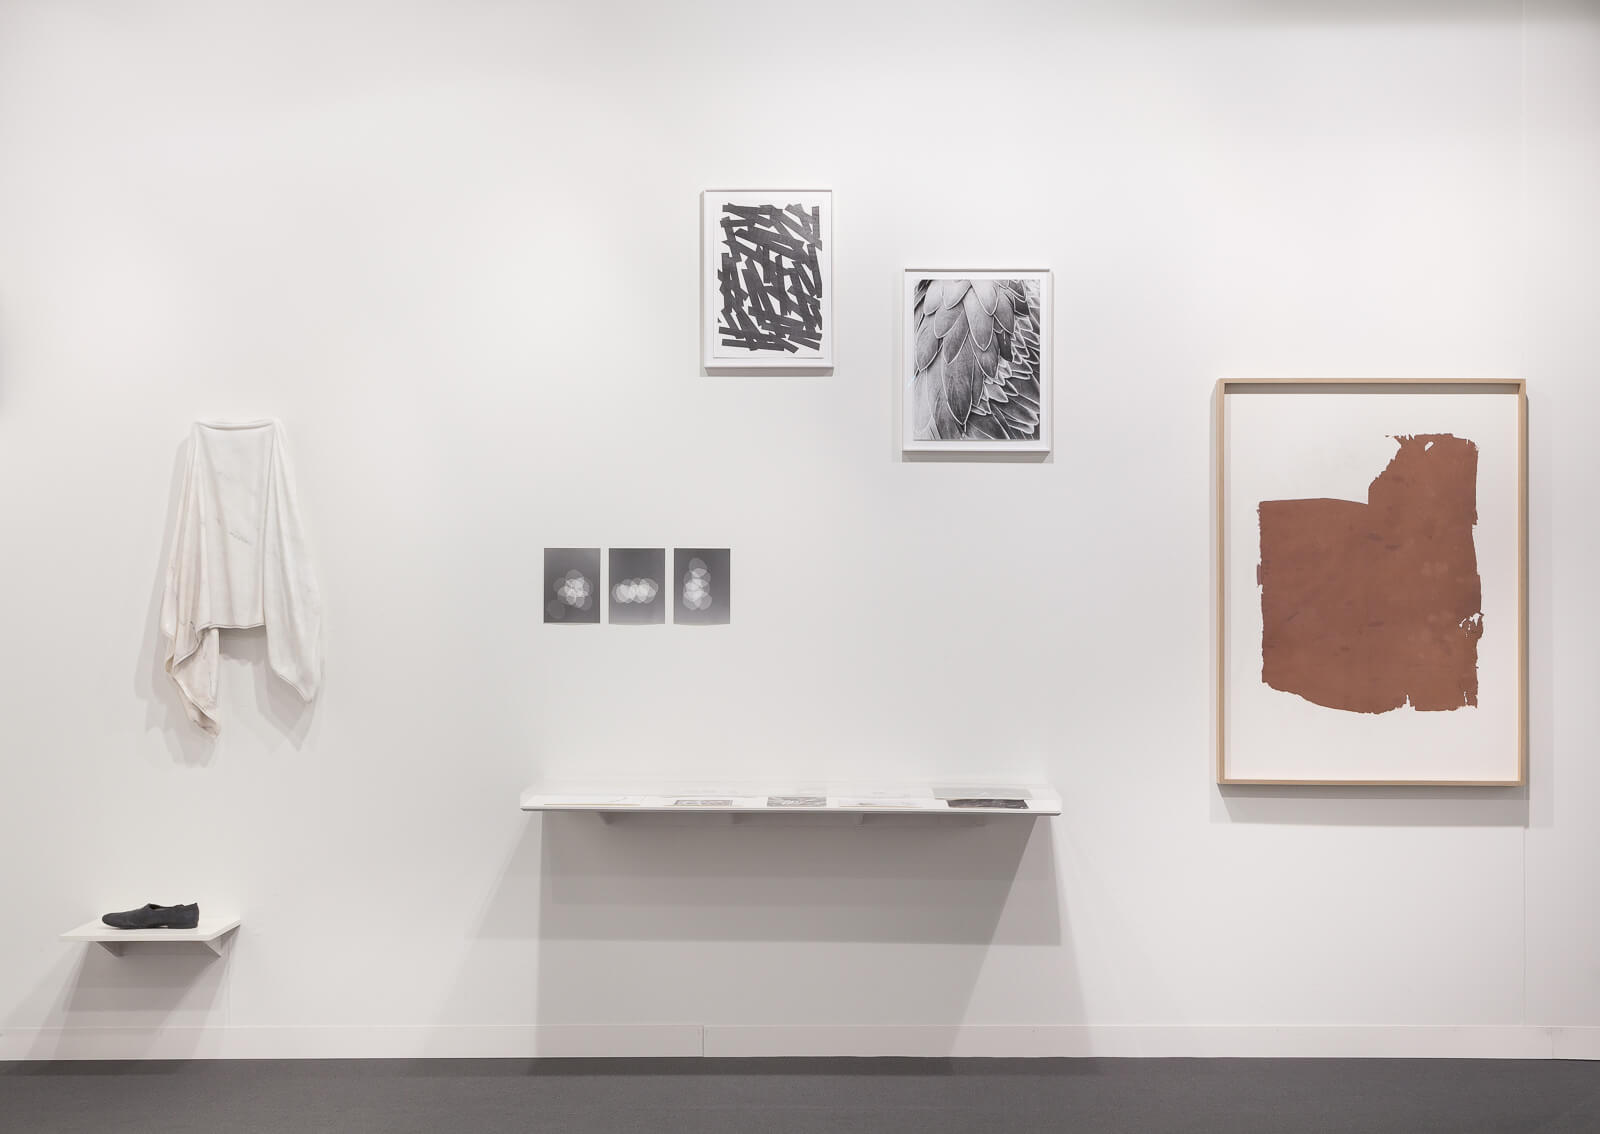 Installation view: ProjecteSD, Booth L4 | ART BASEL 2015 | ProjecteSD